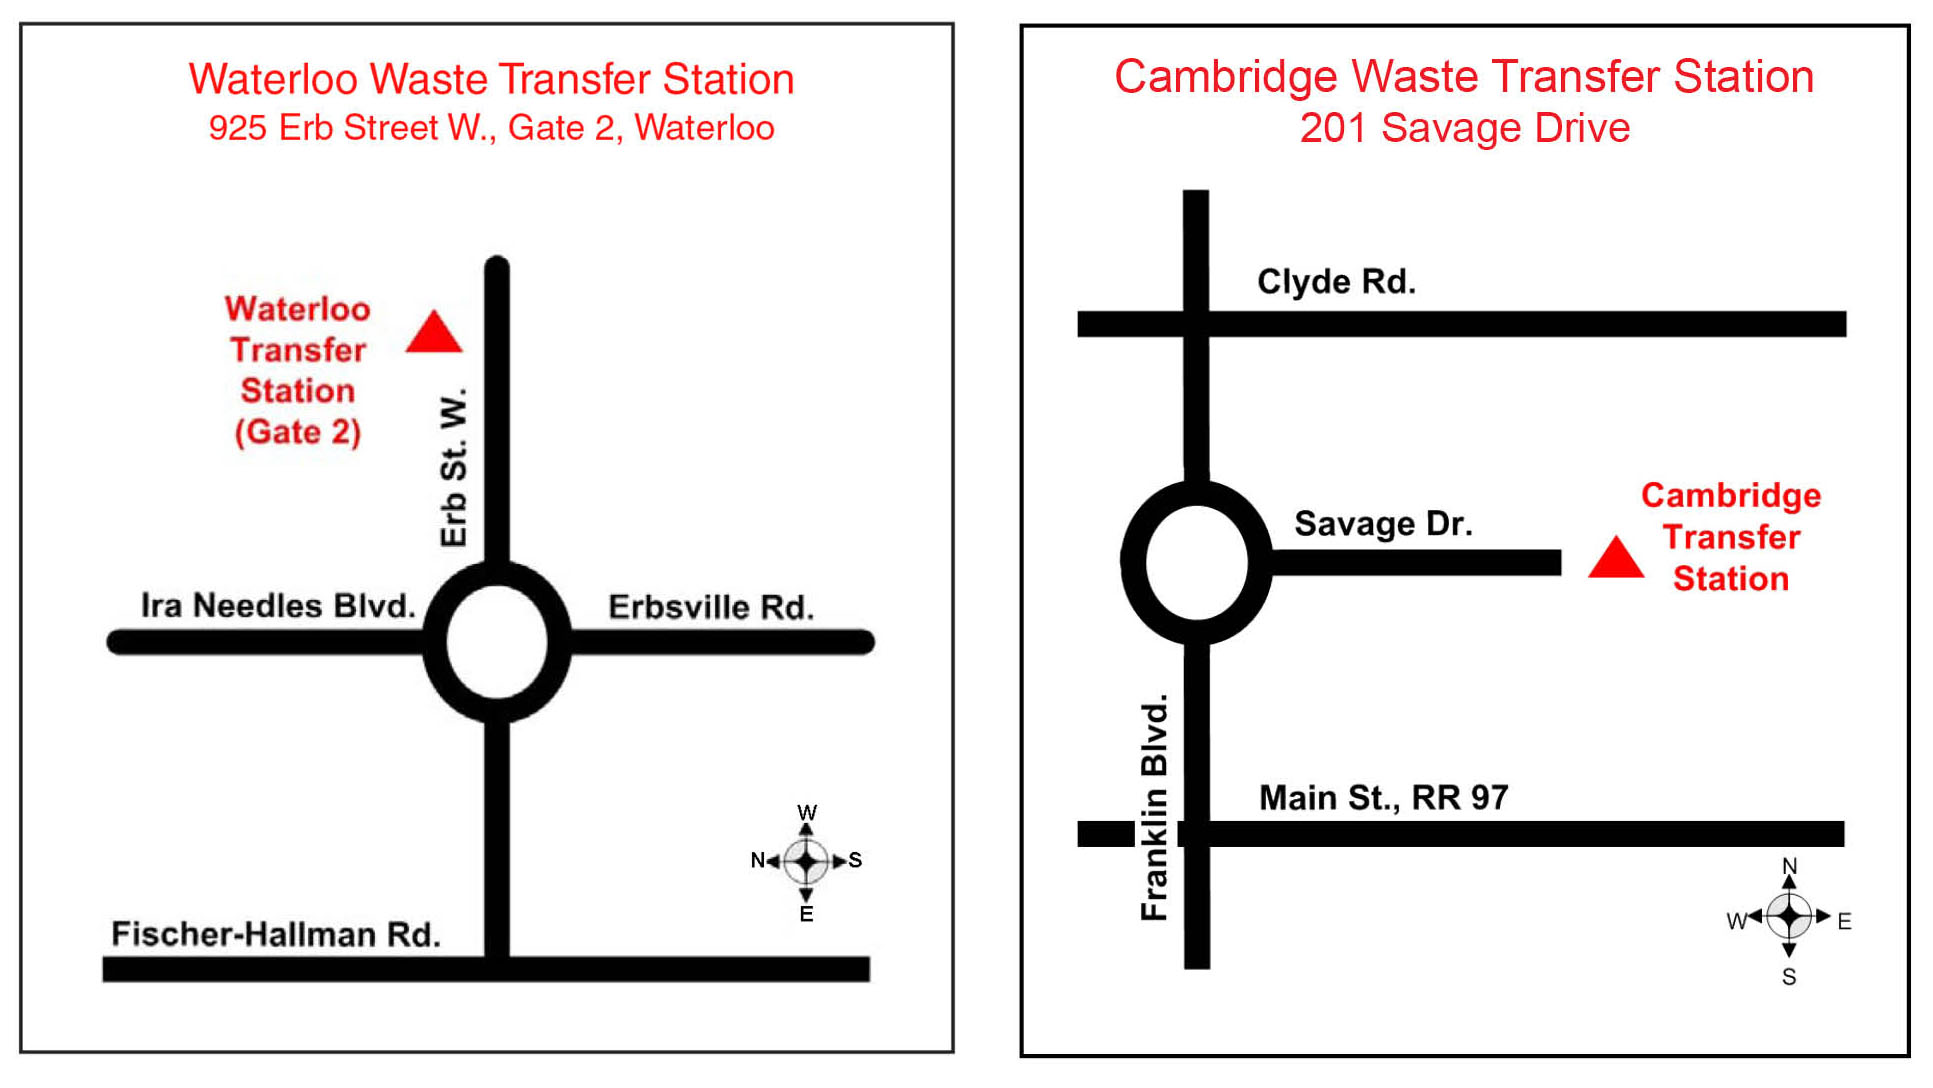 Waterloo and Cambridge landfill site maps